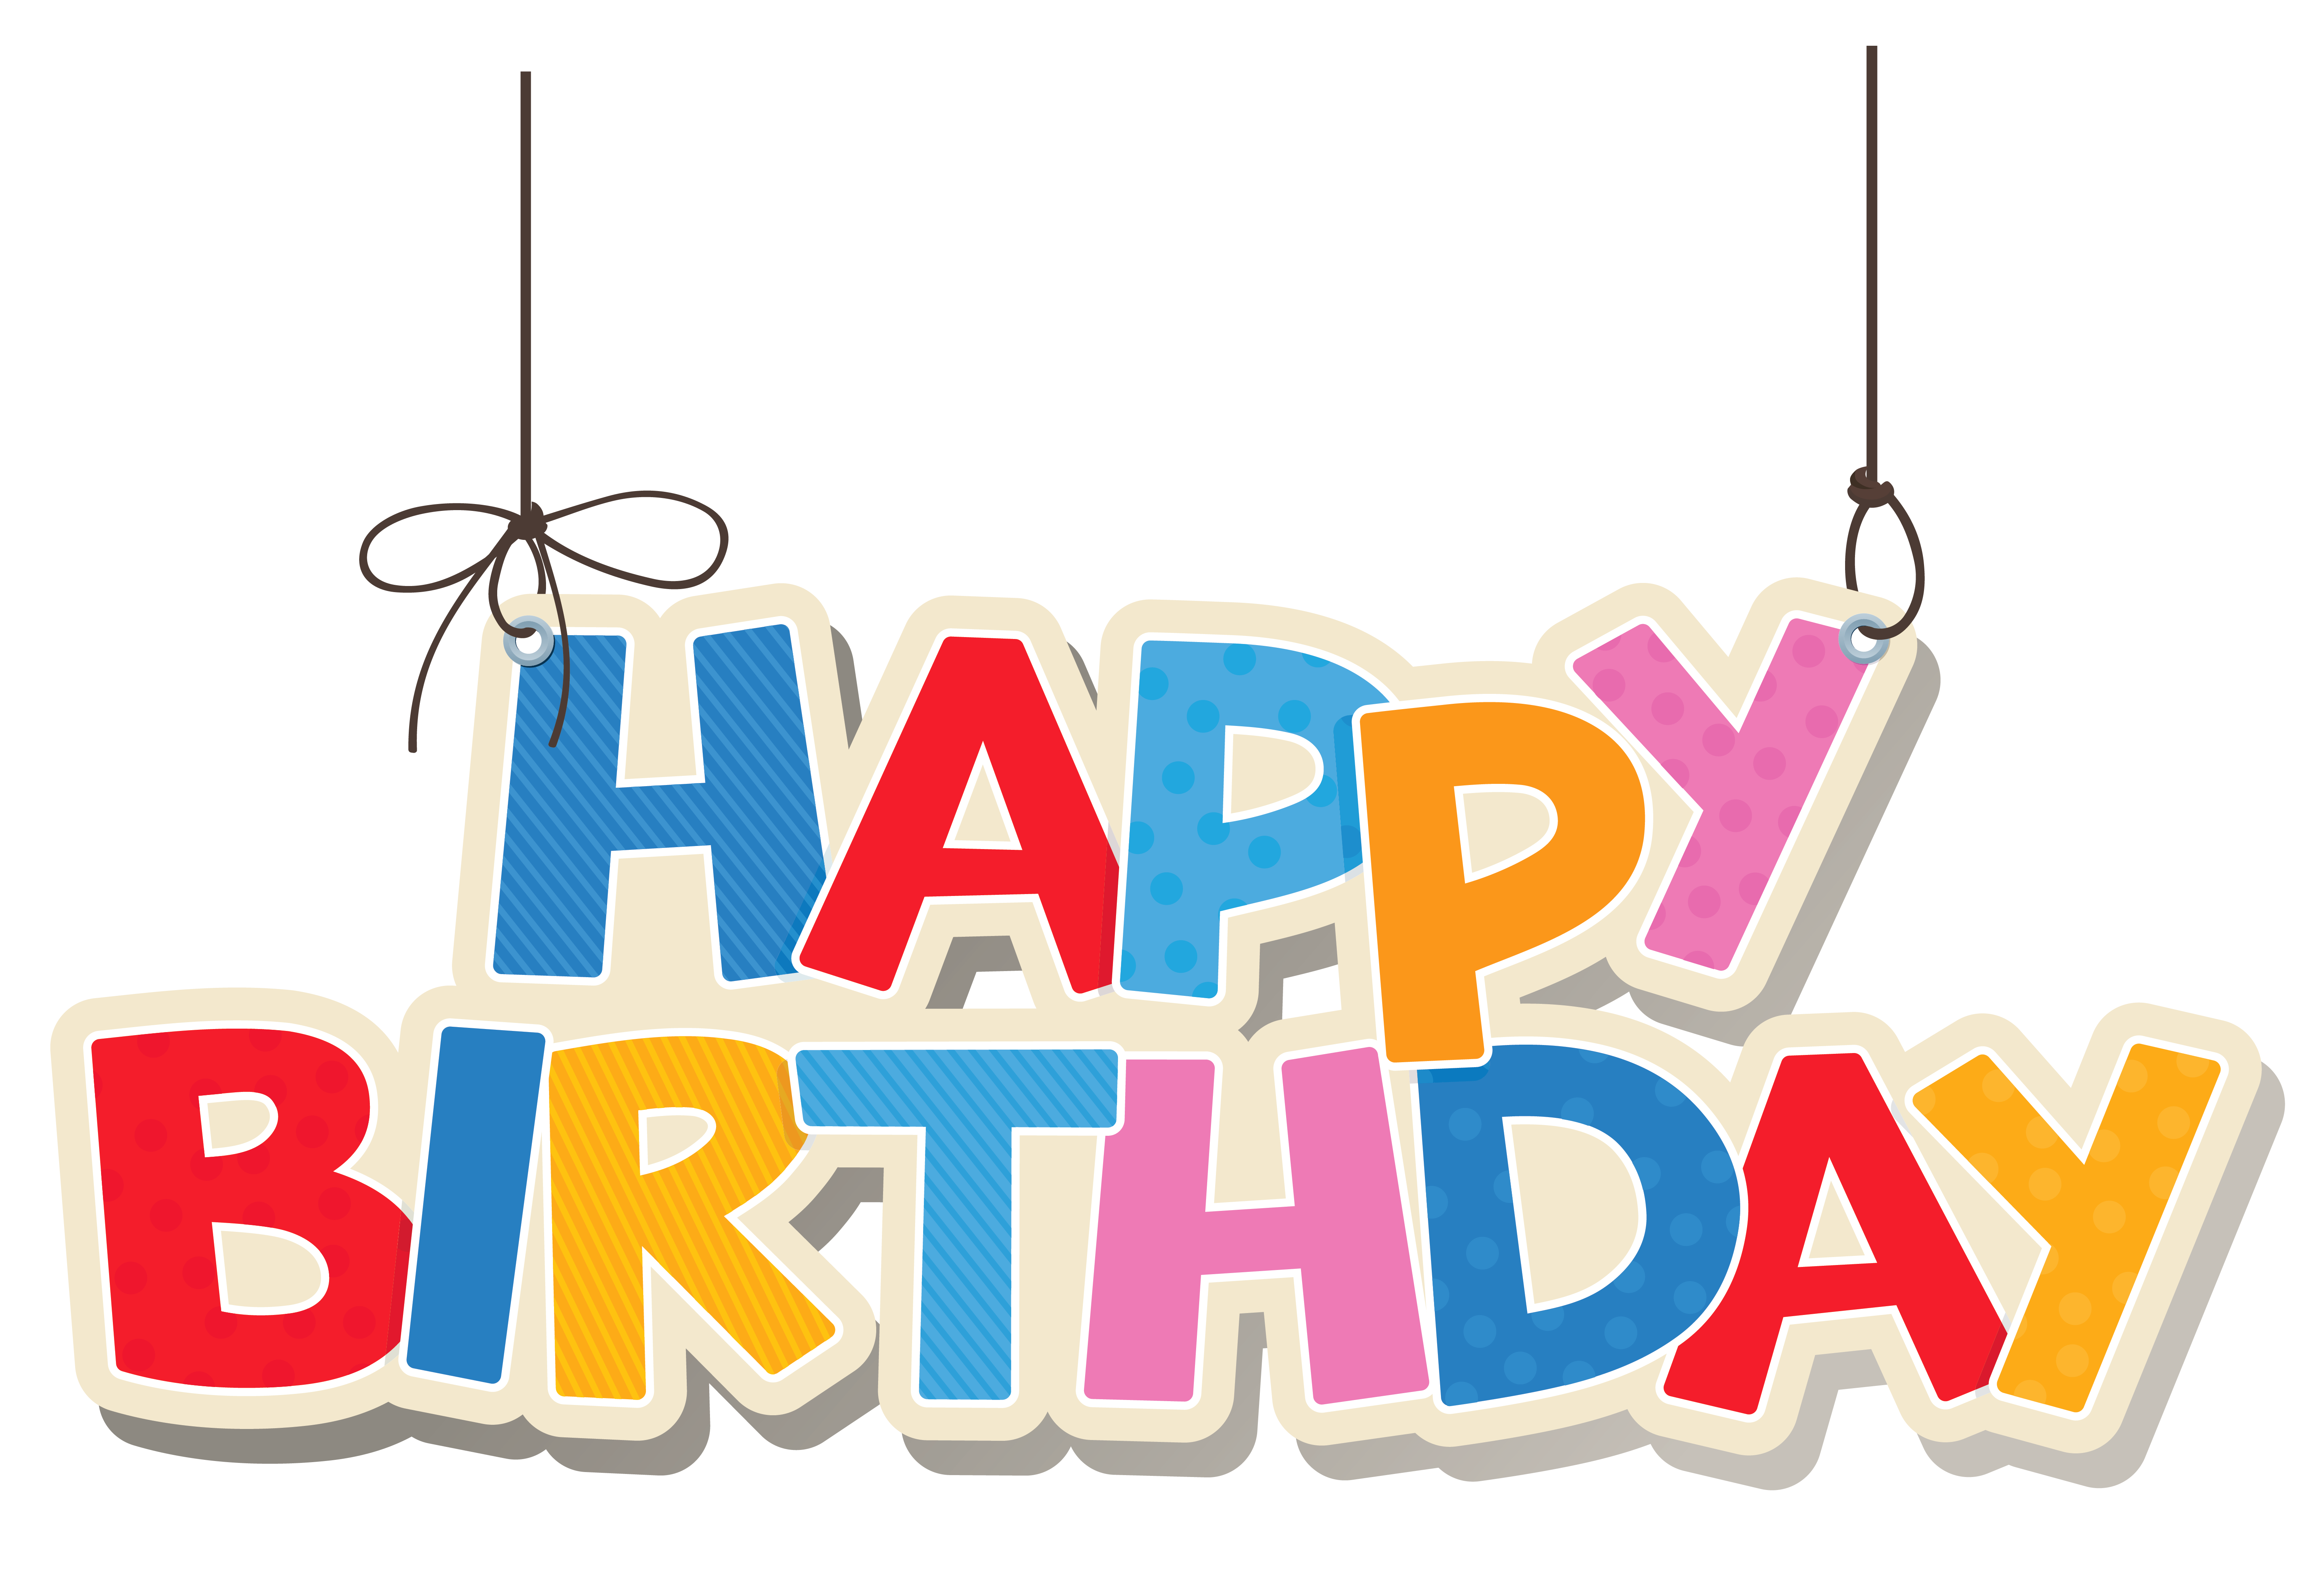 Happy Birthday Png Free Download Best Happy Birthday Png